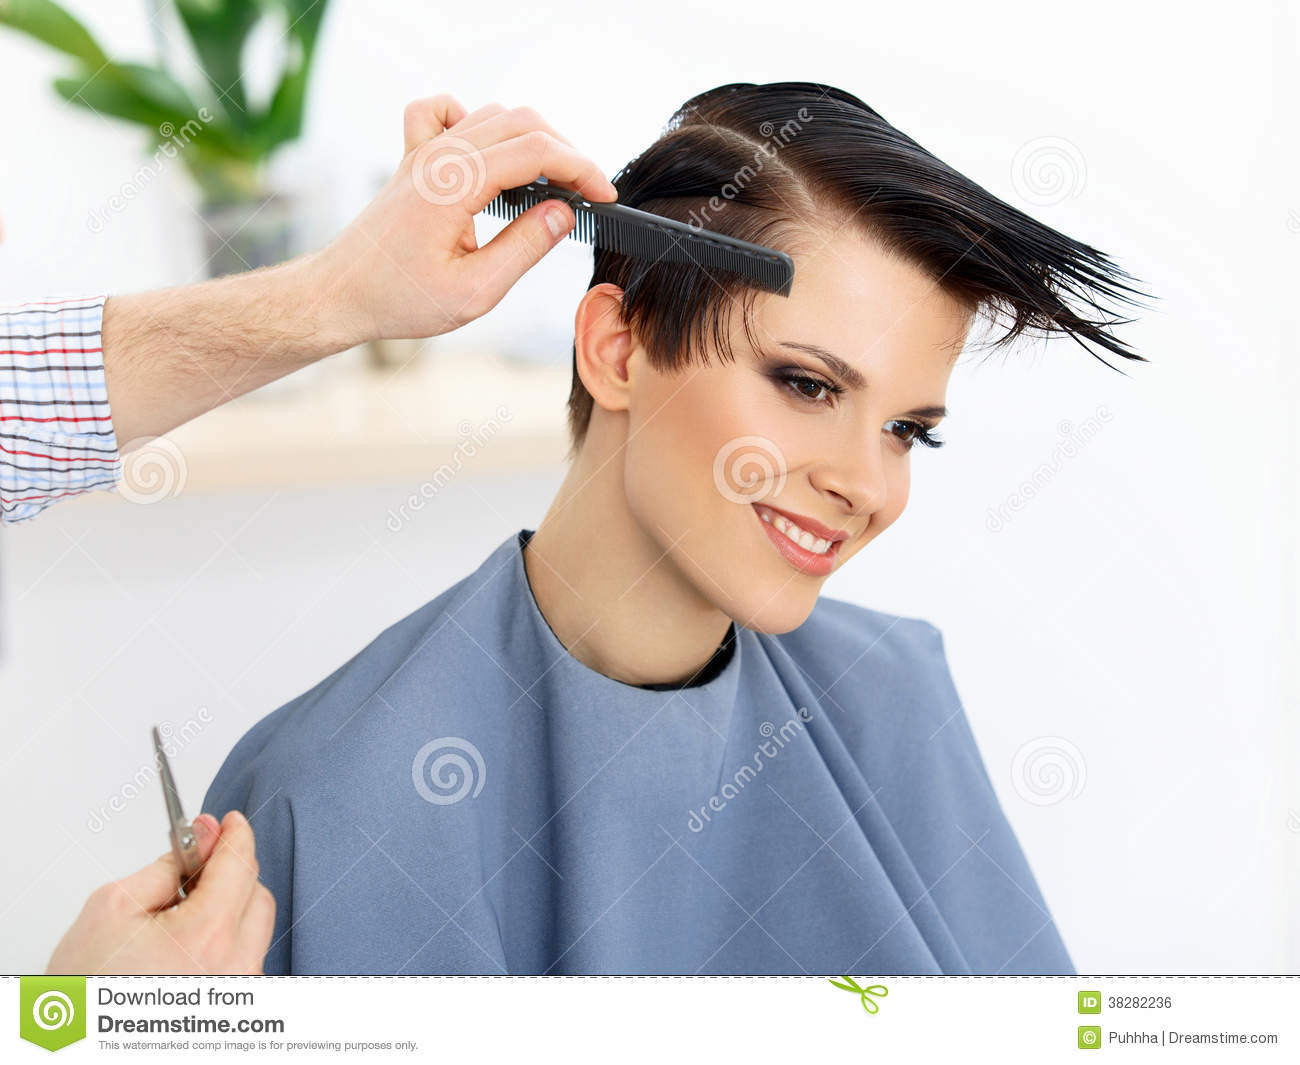 Hair. Hairdresser doing Hairstyle. Beauty Model Woman. Haircut